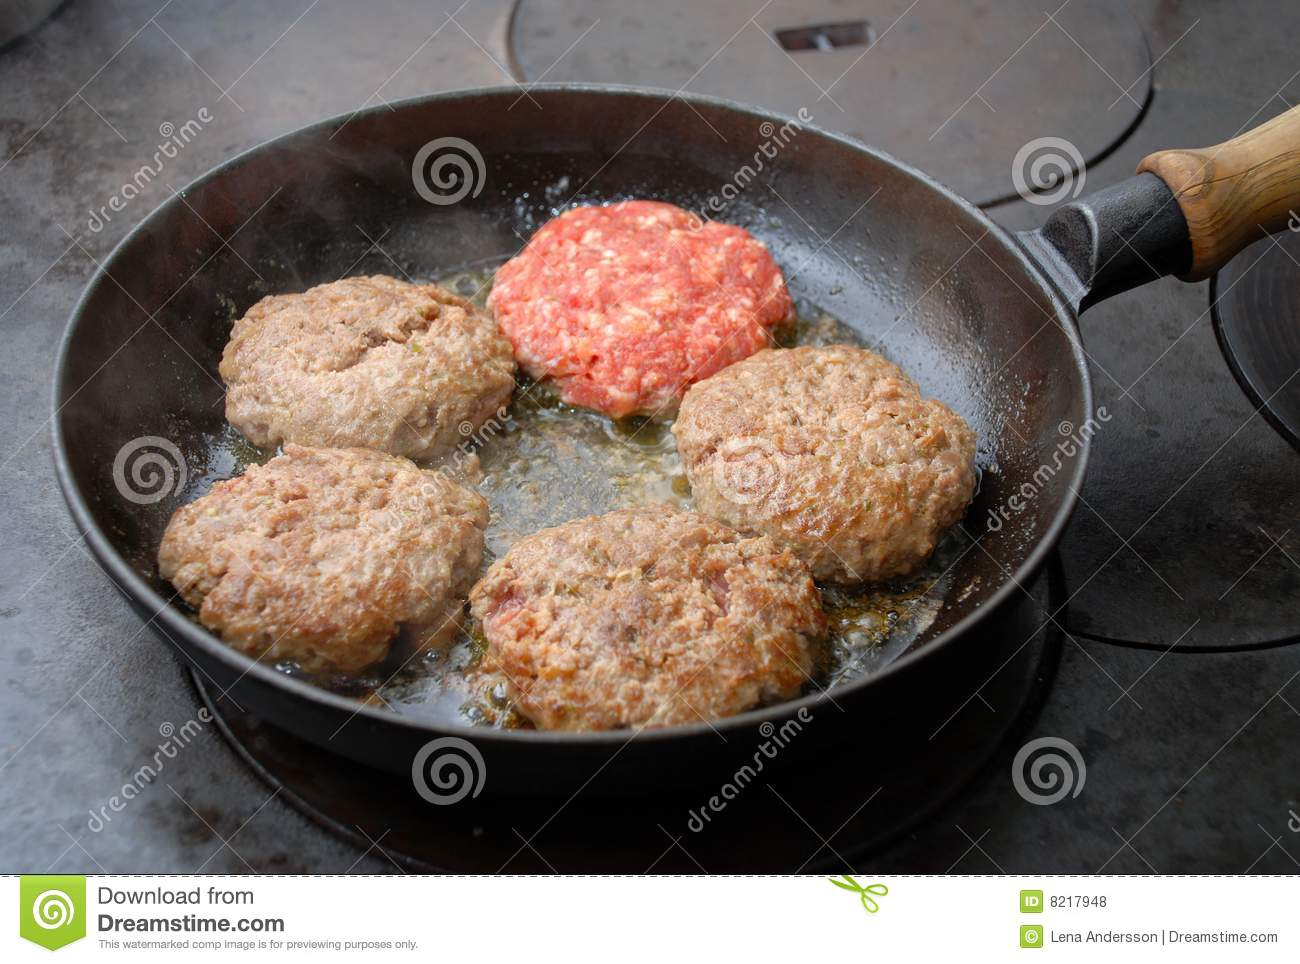 How To Cook A Burger In Pan